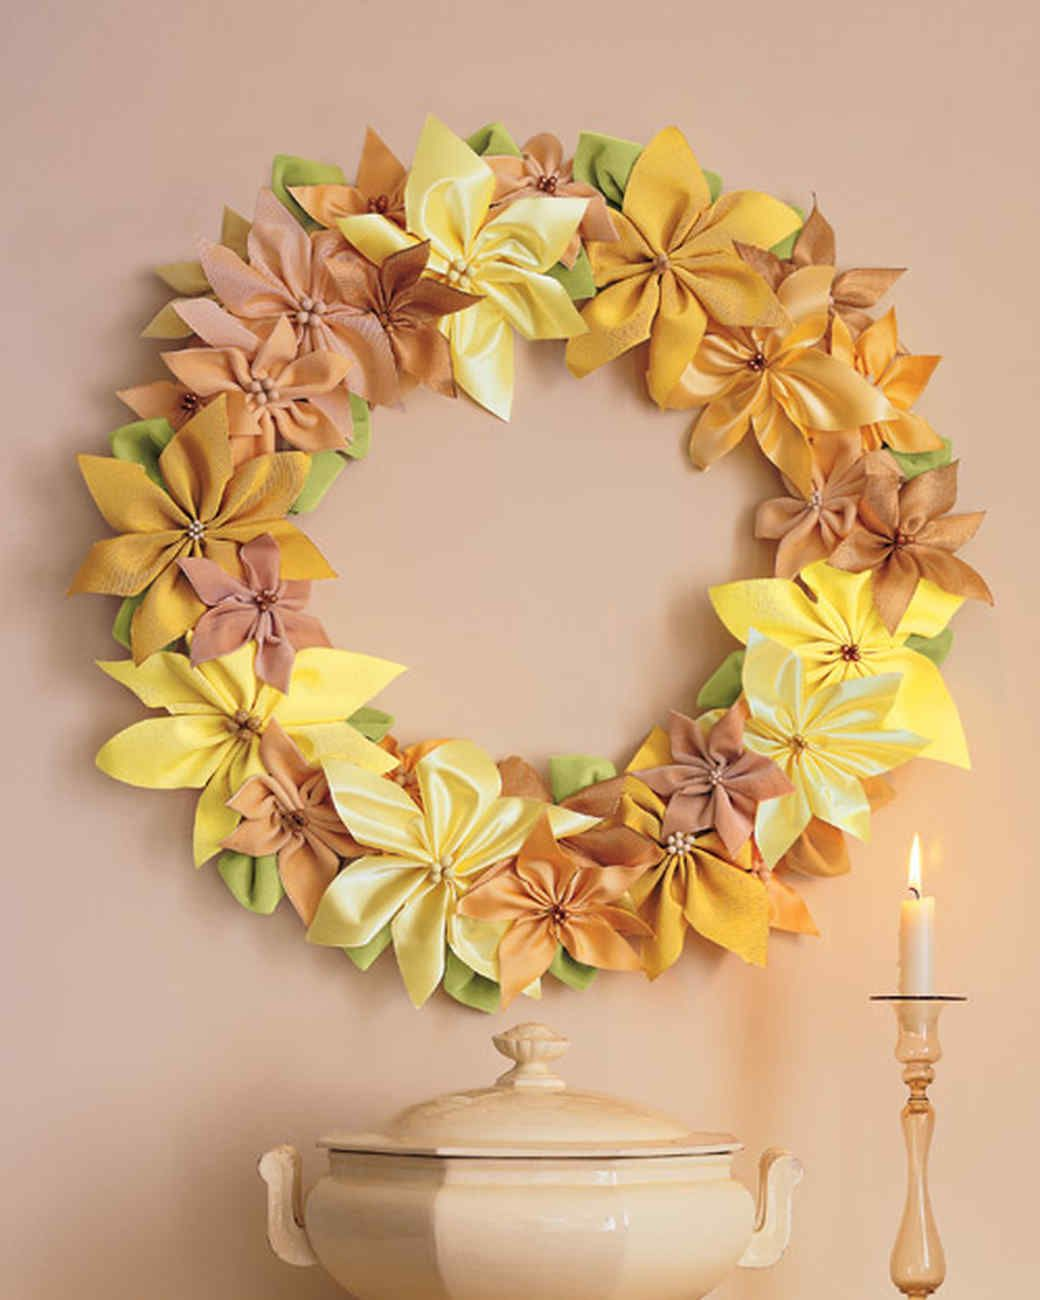 Ribbon-Poinsettia Wreath | Poinsettia, Martha stewart and Wreaths